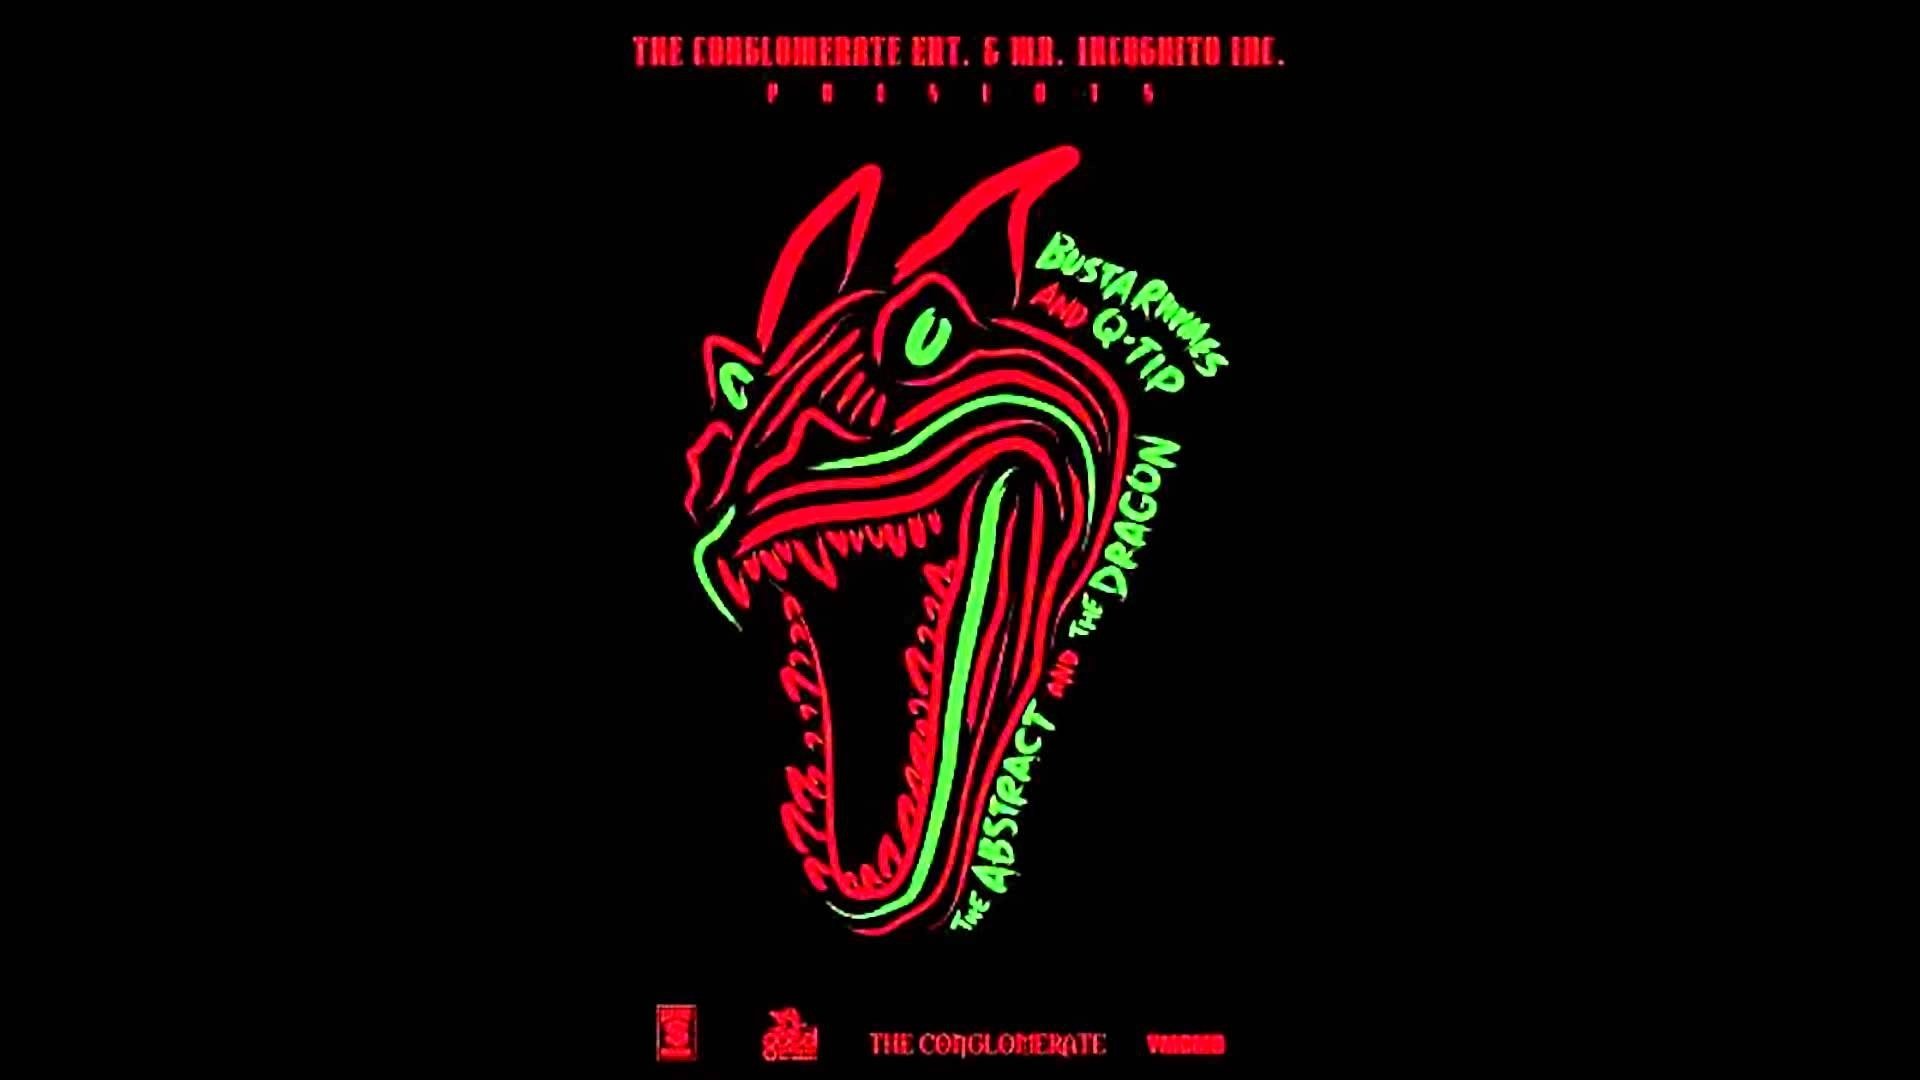 a tribe called quest wallpapers, hd images a tribe called quest